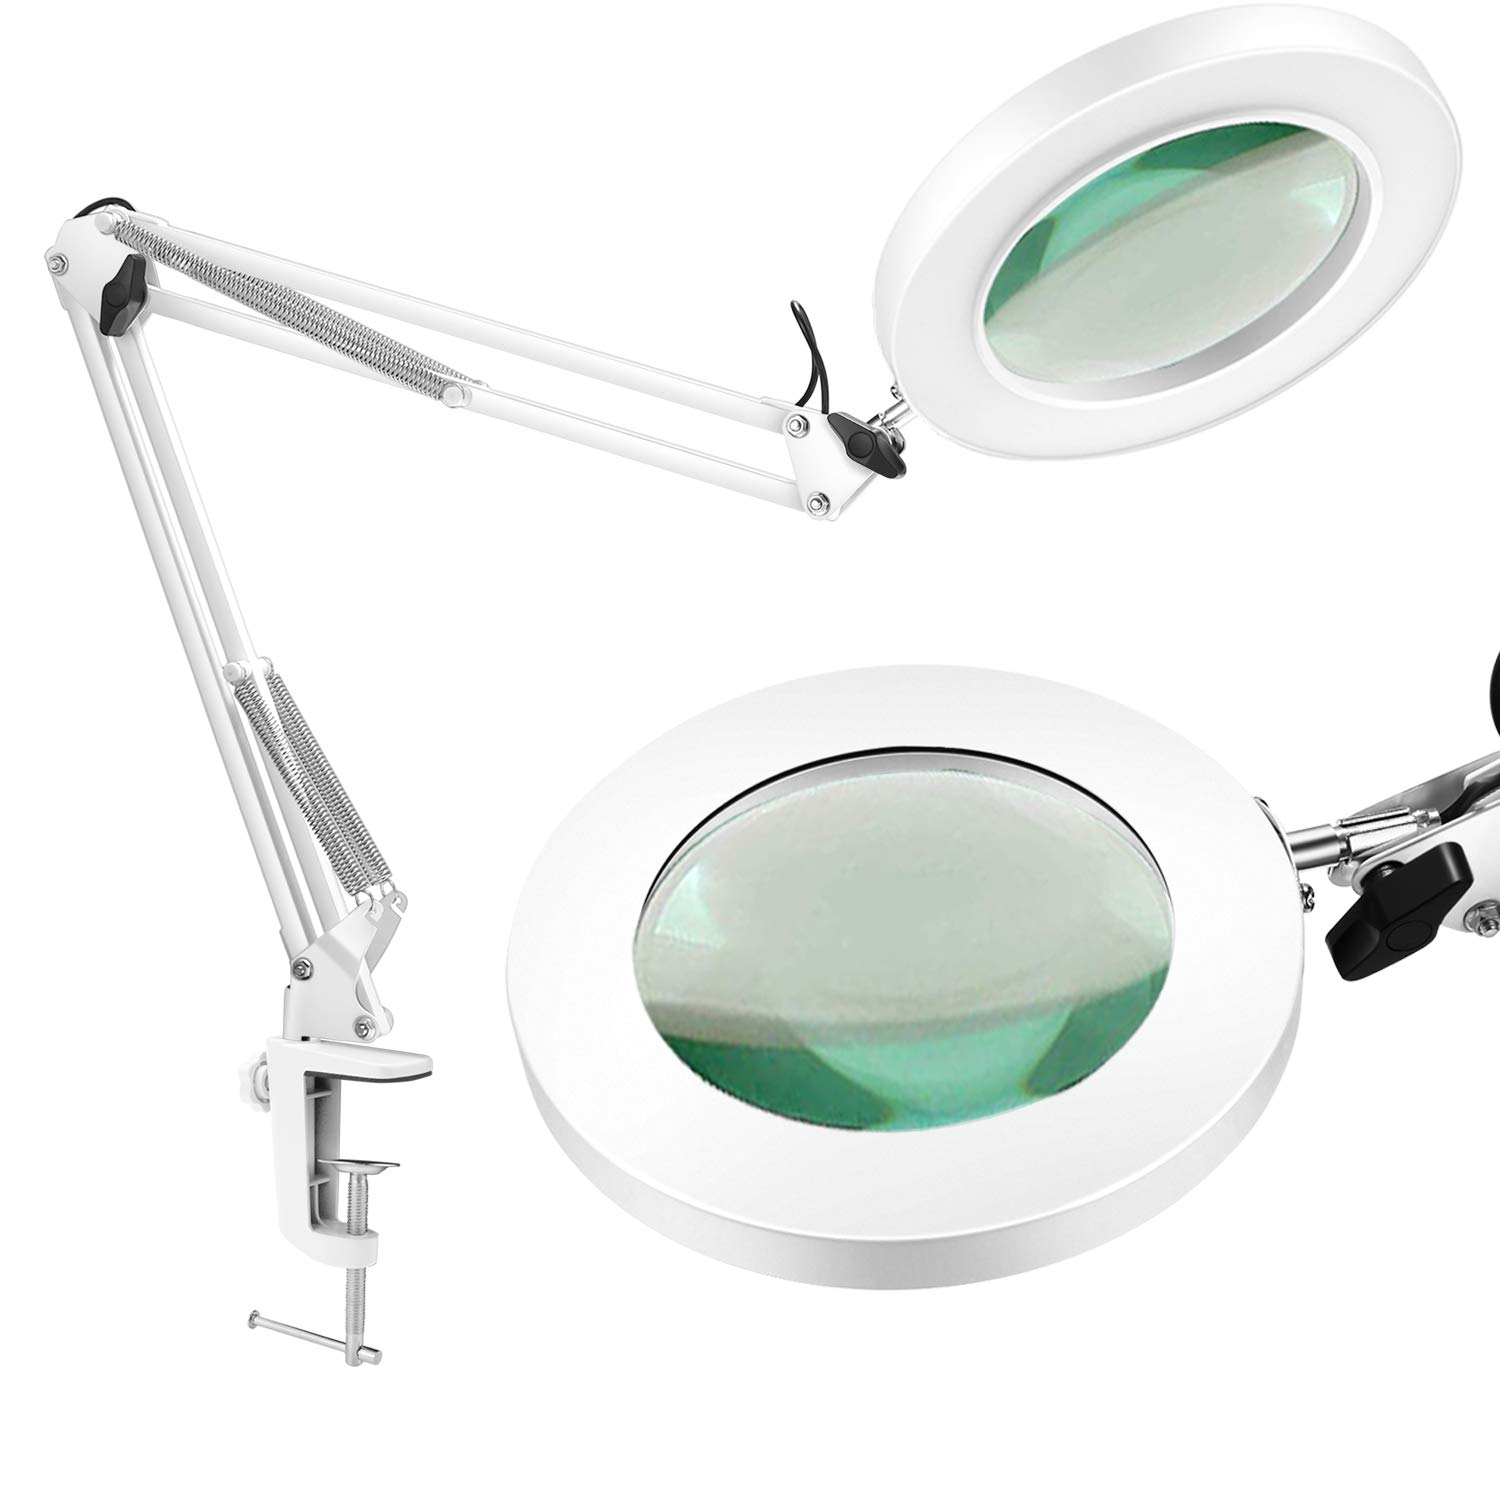 LANCOSC Magnifying Glass Desk Lamp with Clamp - White/Warm White Lighted 5-Diopter Magnifier Lens - Adjustable Metal Swivel Arm LED Light for Reading, Crafts, Professional Tasks (White) by LANCOSC